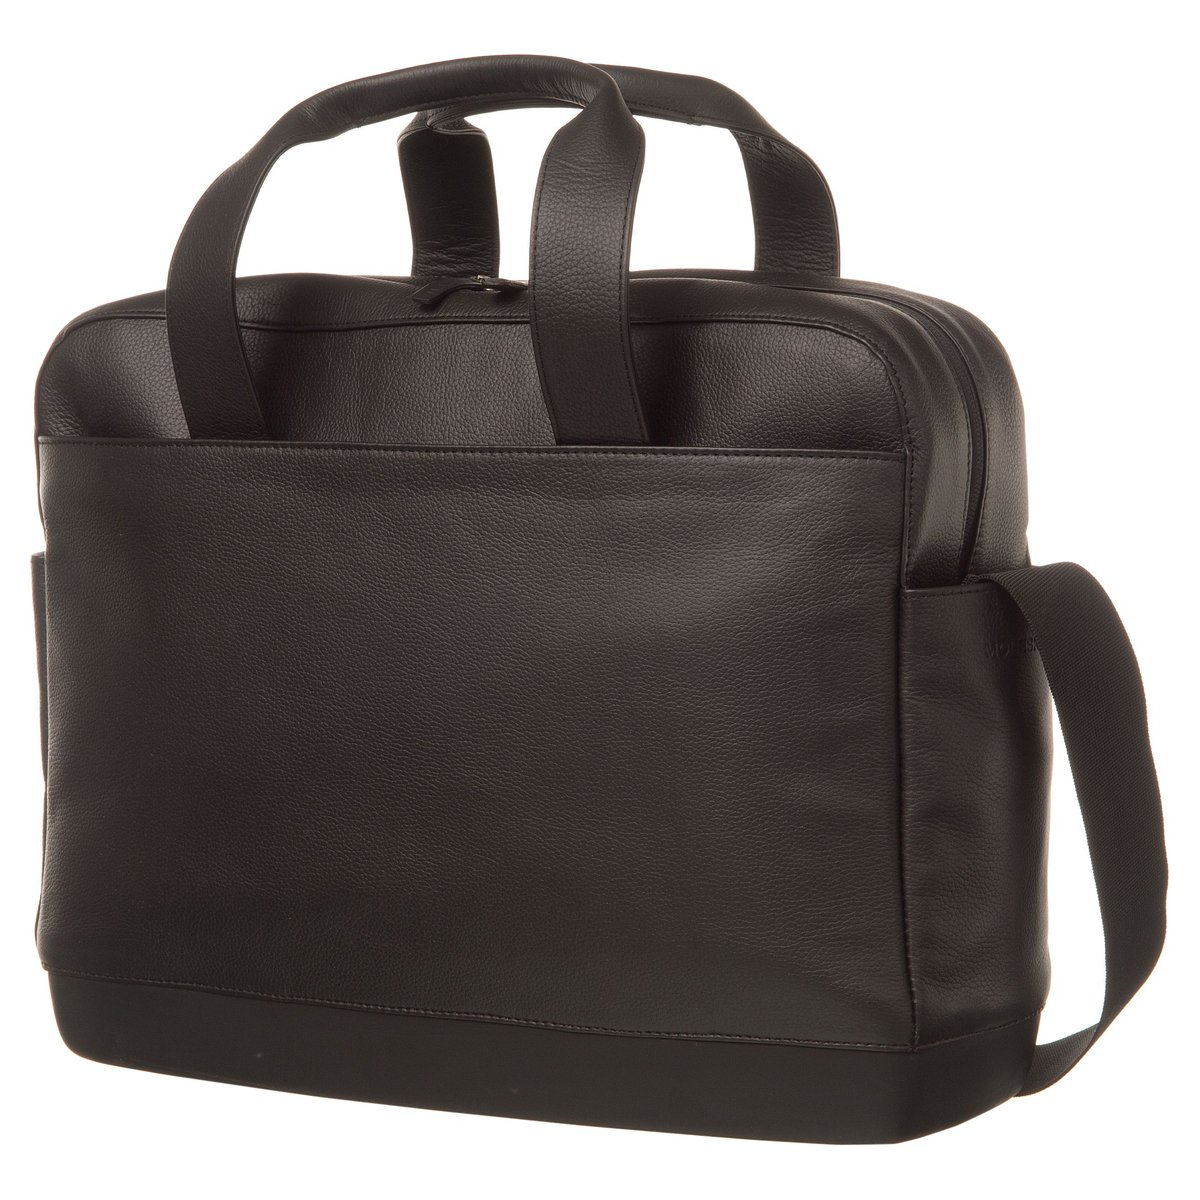 Moleskine Classic Leather Utility Bag, Black, For Work, School, Travel, and Everyday Use, Space for Tablet Laptop and Chargers, Notebook Planner or Organizer, Padded Adjustable Straps, Secure Zipper by Moleskine (Image #1)